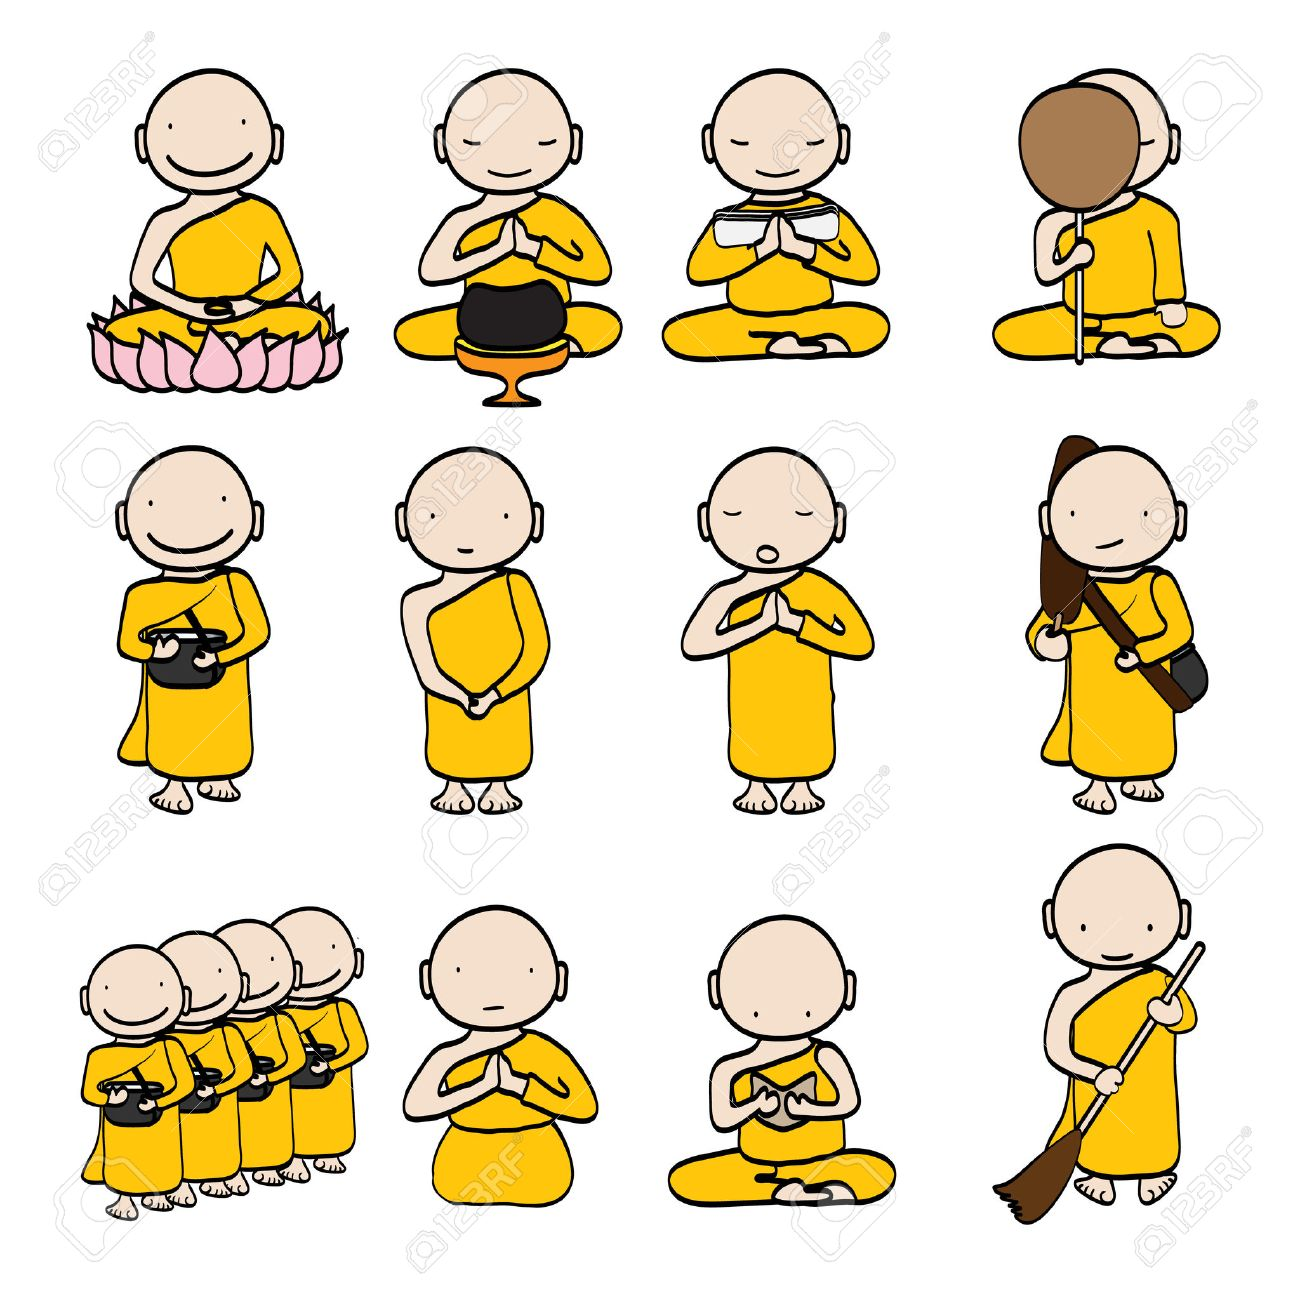 illustration of Cute young monk cartoon - 24894341